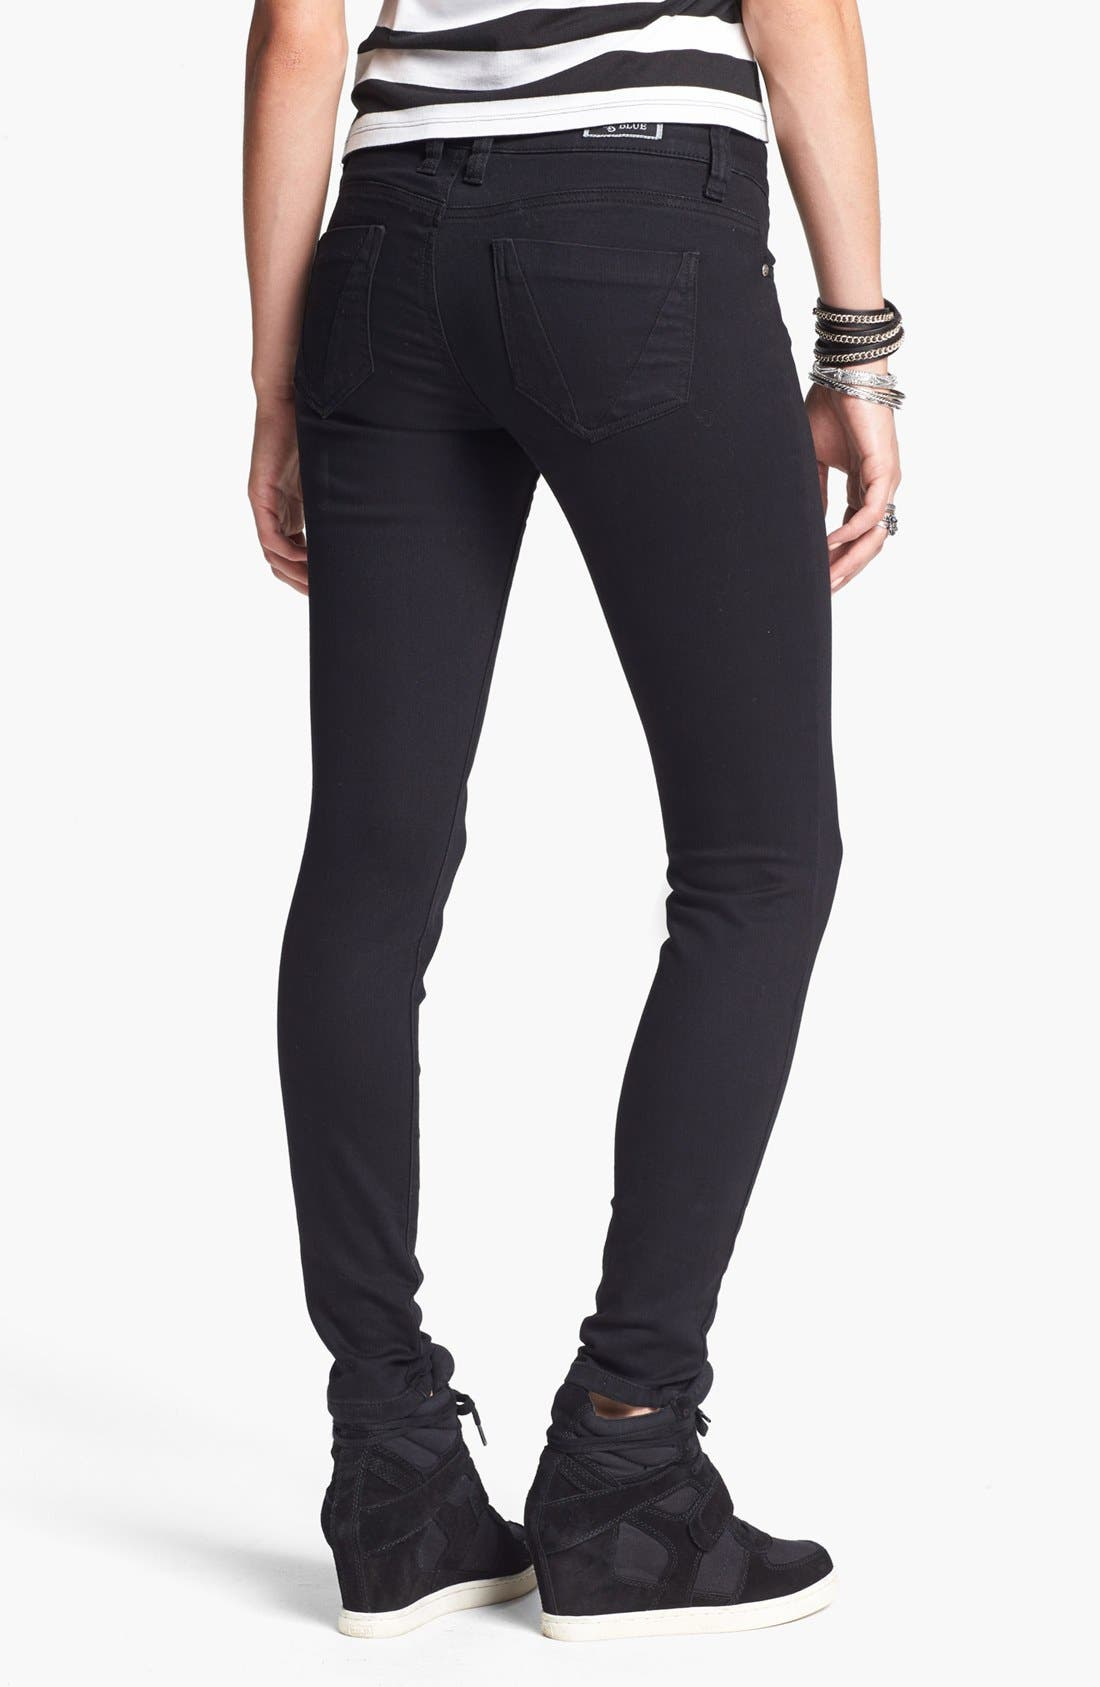 Alternate Image 2  - STS Blue Skinny Jeans (Black) (Juniors)